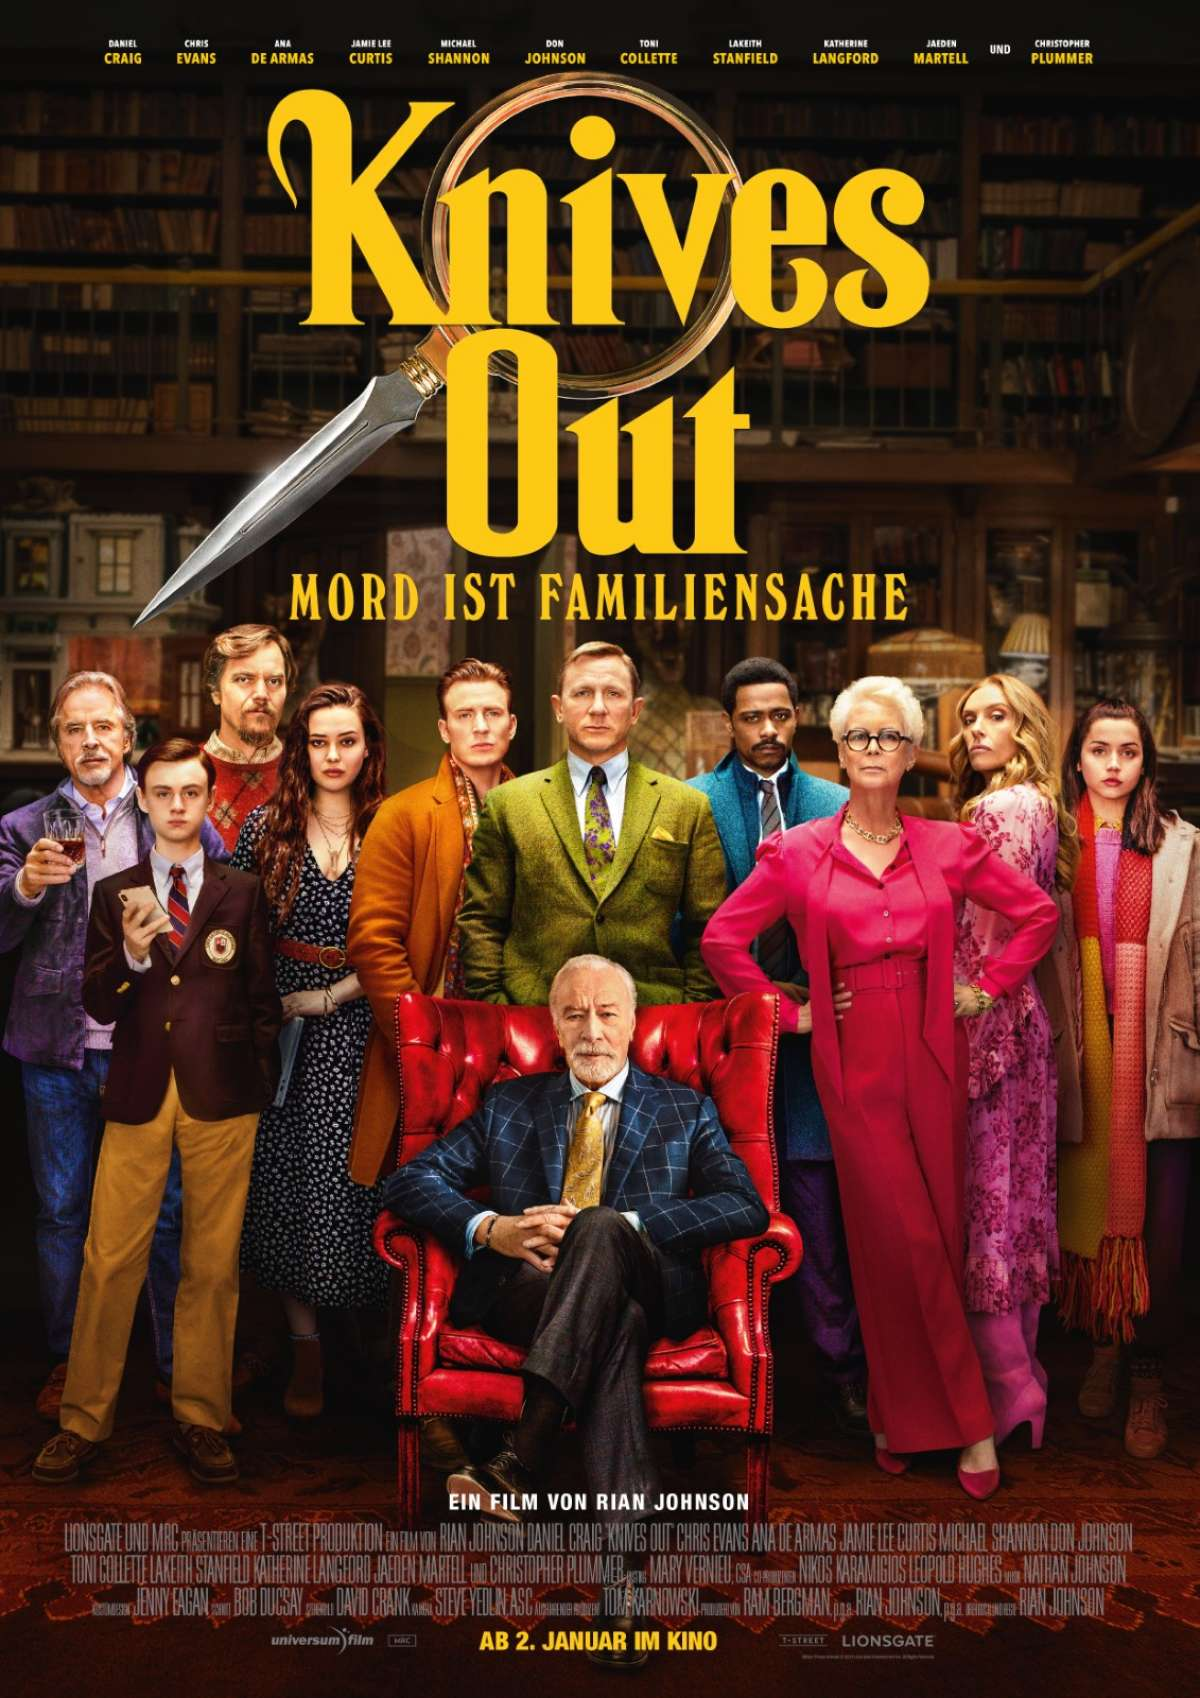 Knives Out - Mord ist Familiensache - Autokino Bilster Berg  - Bad Driburg